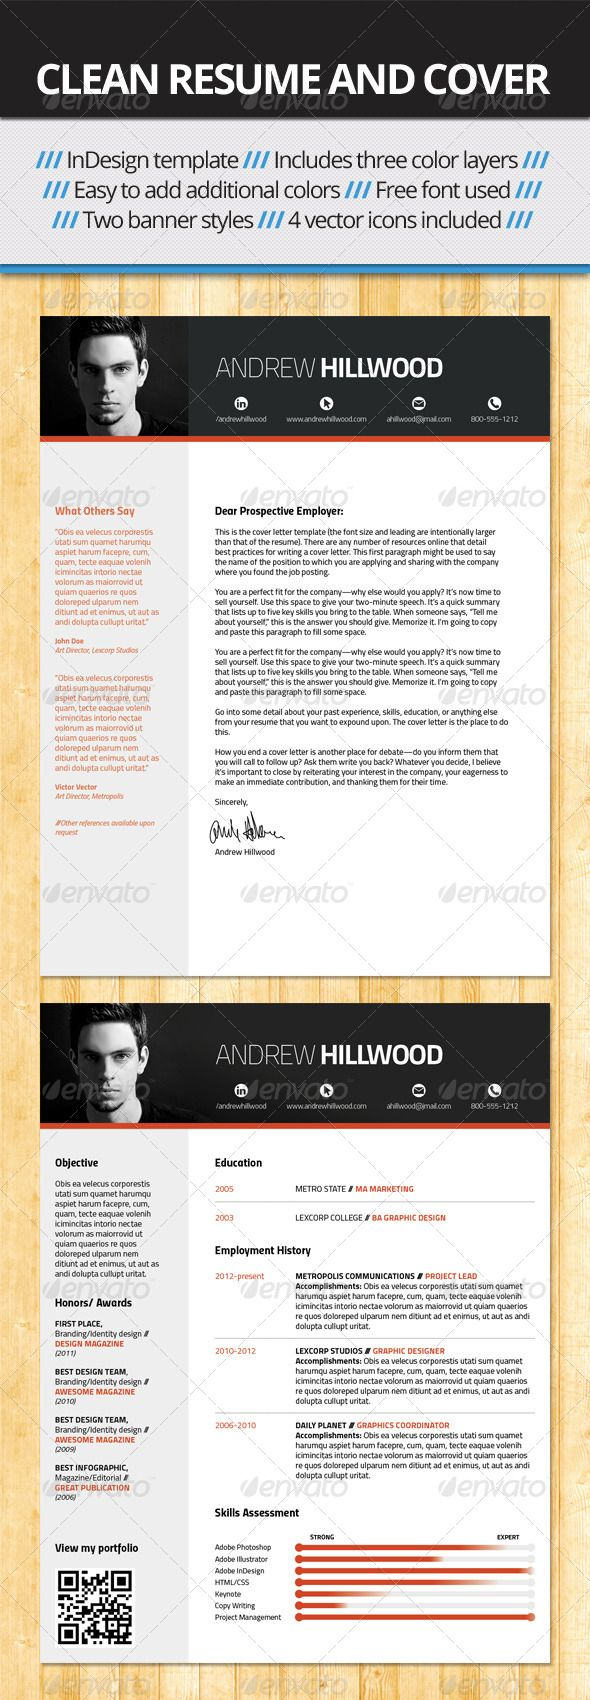 Crisp Clean Resume And Cover Template    Template Cover